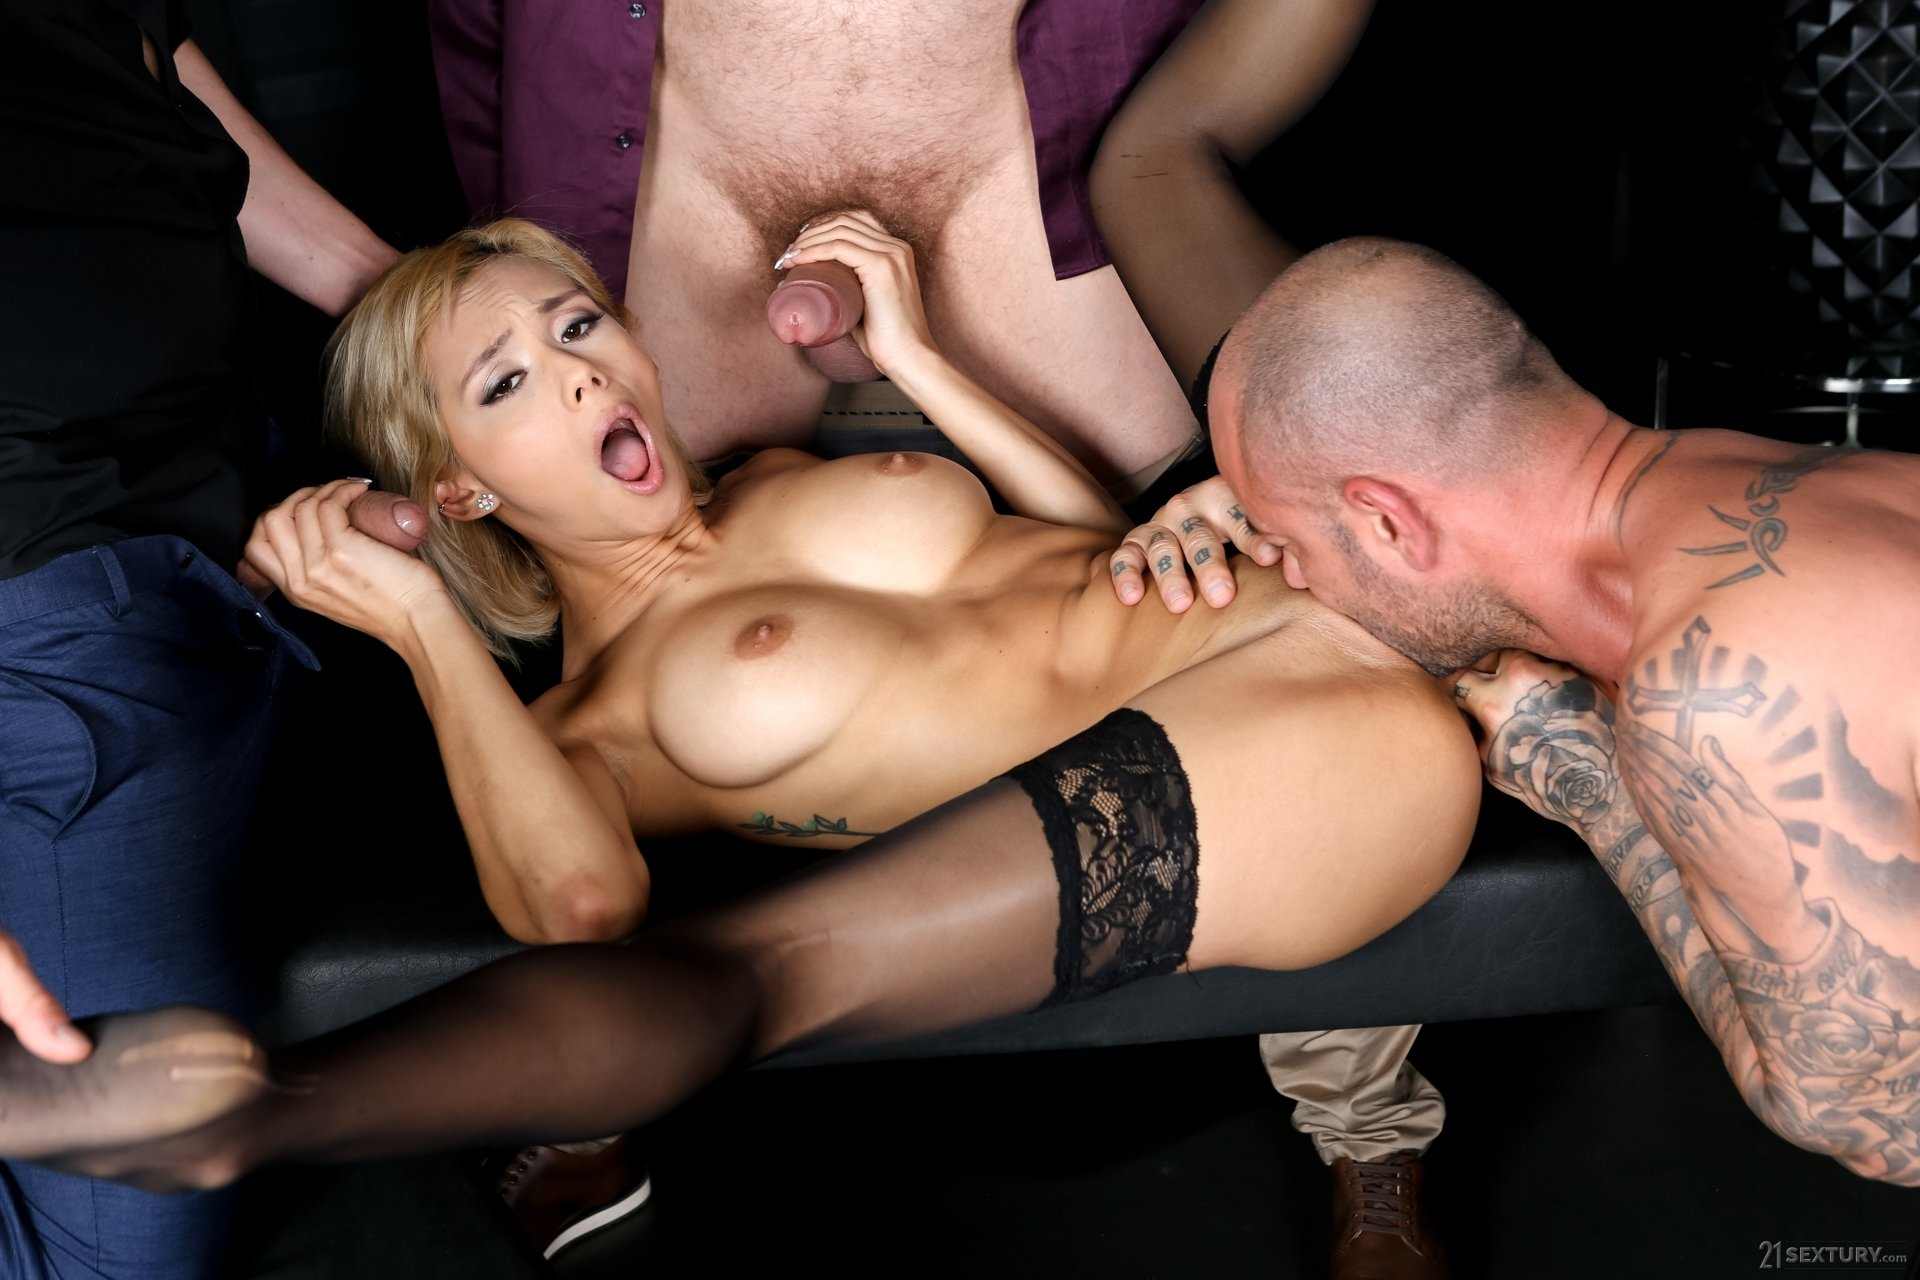 Cytherea is a lesbian squirt machine Nayana family full sex